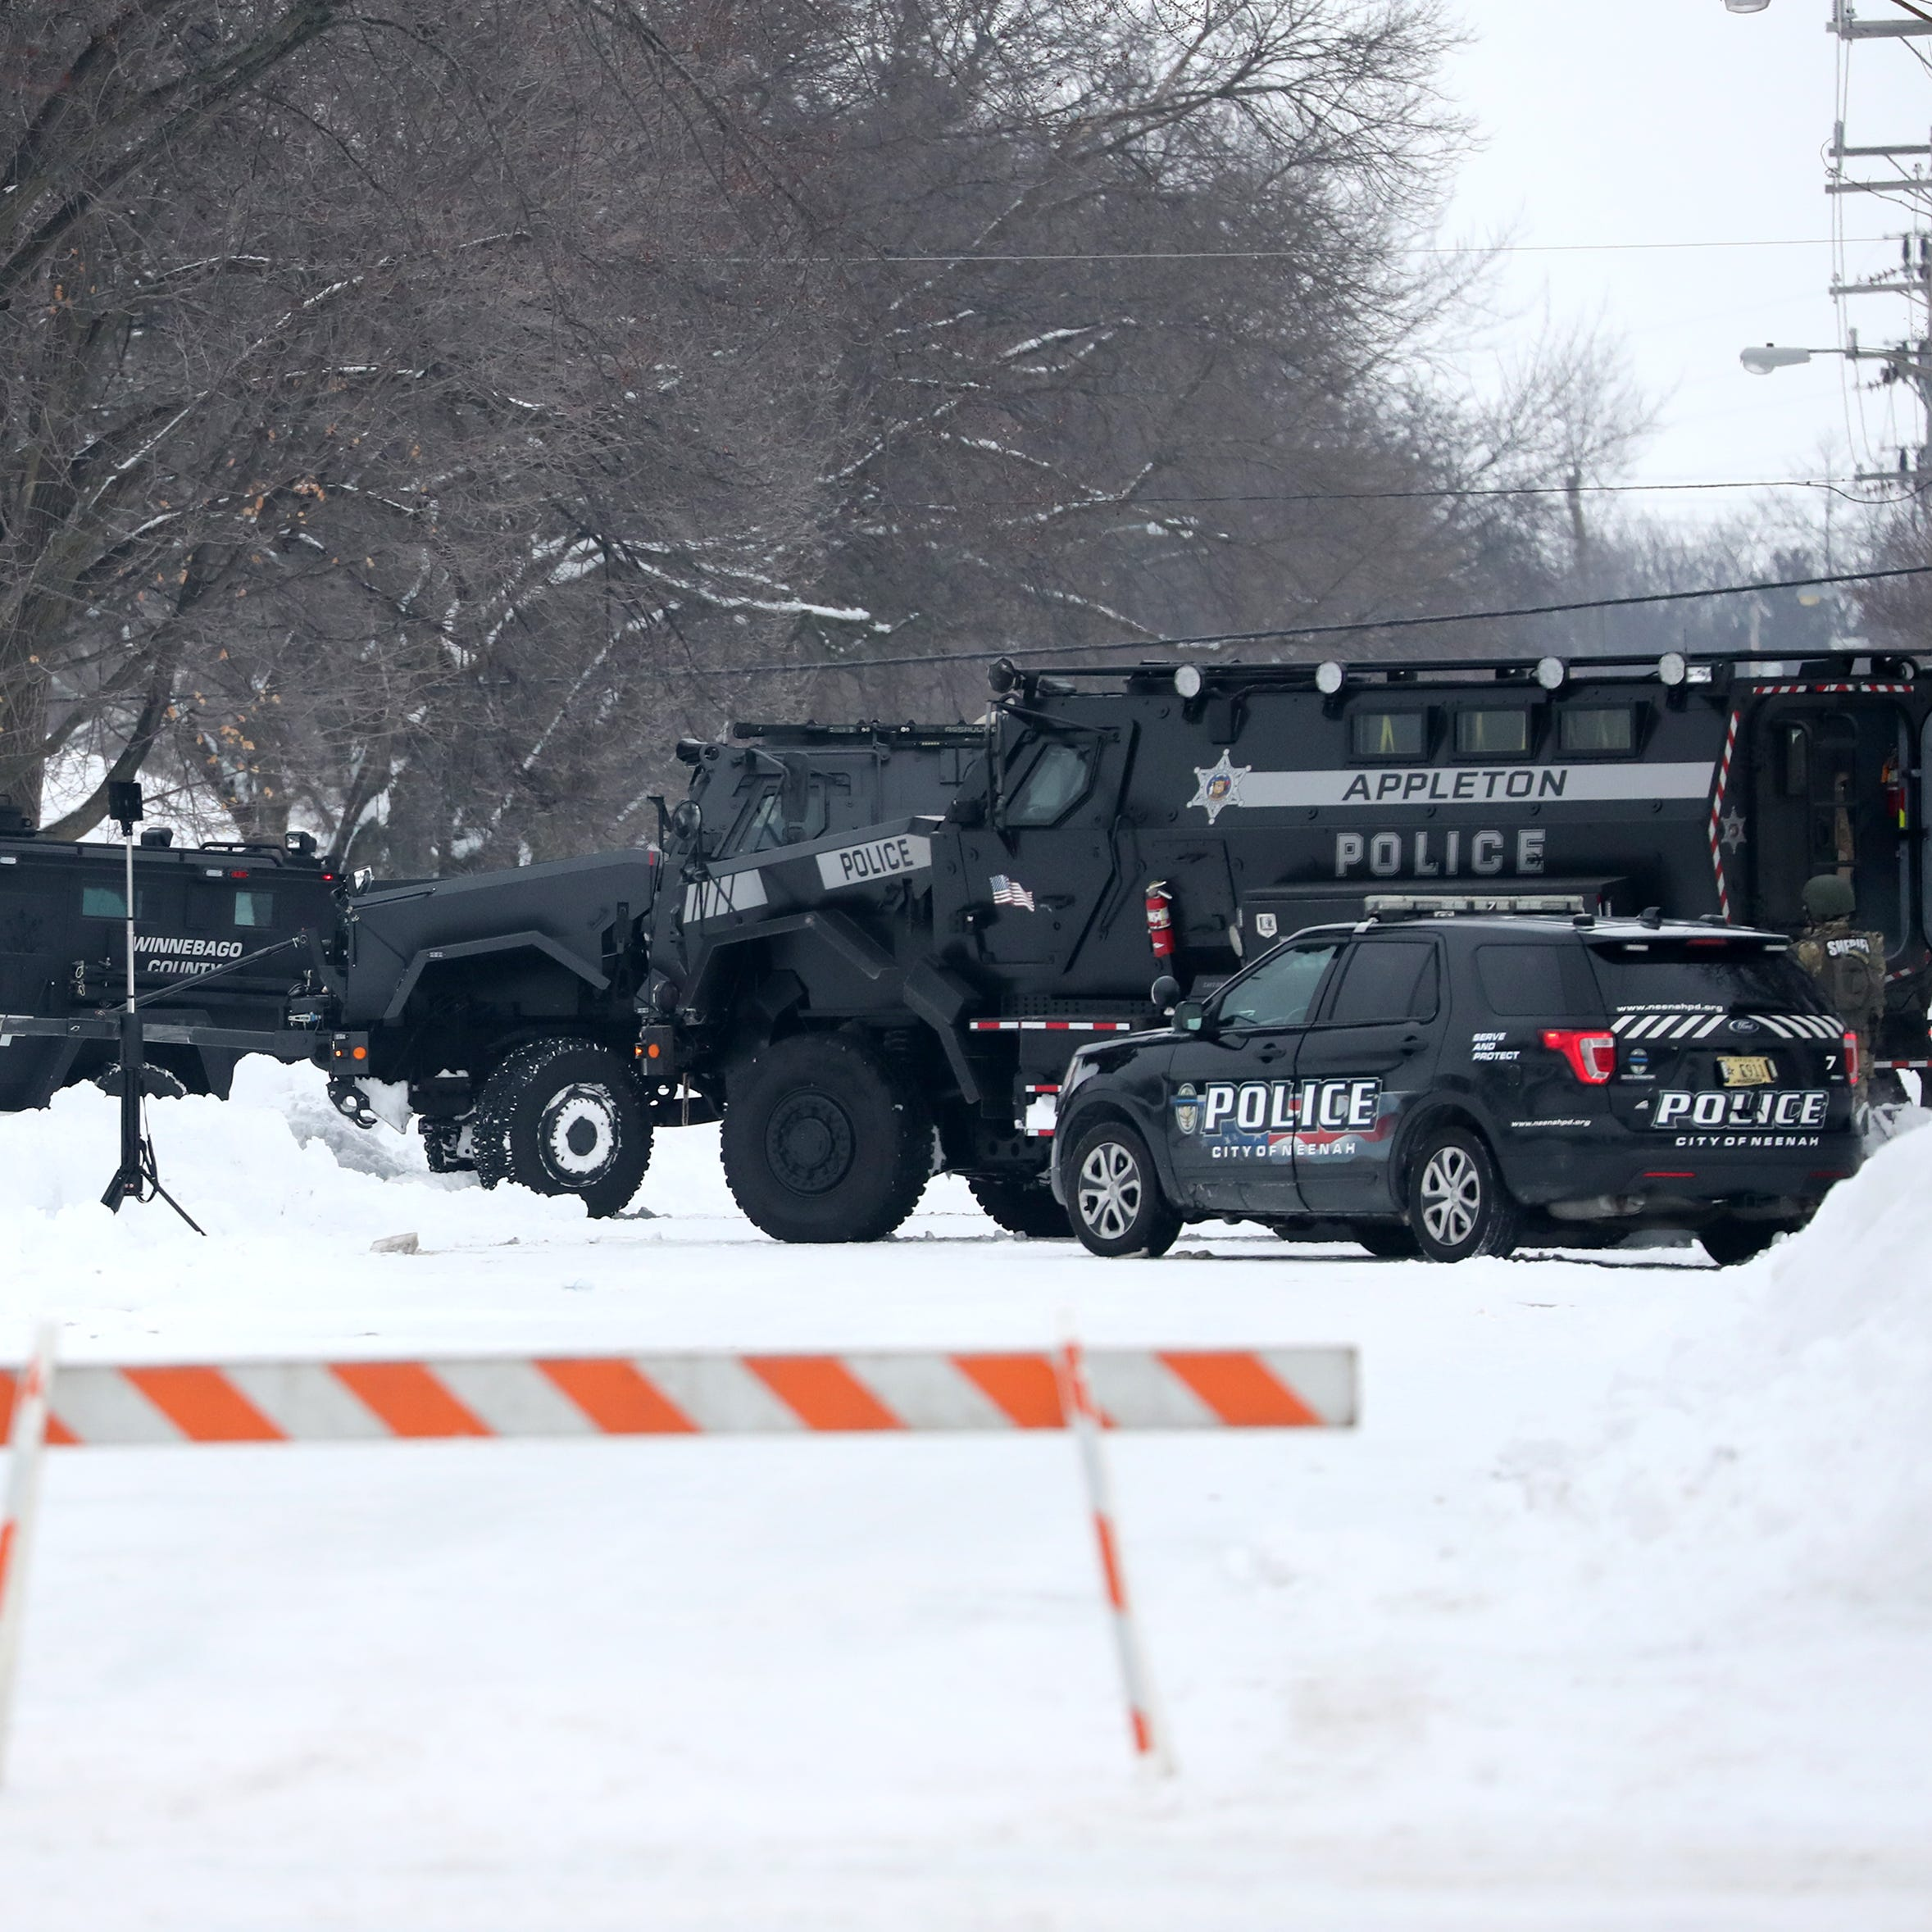 Neenah police: Armed suspect arrested after barricading himself inside home